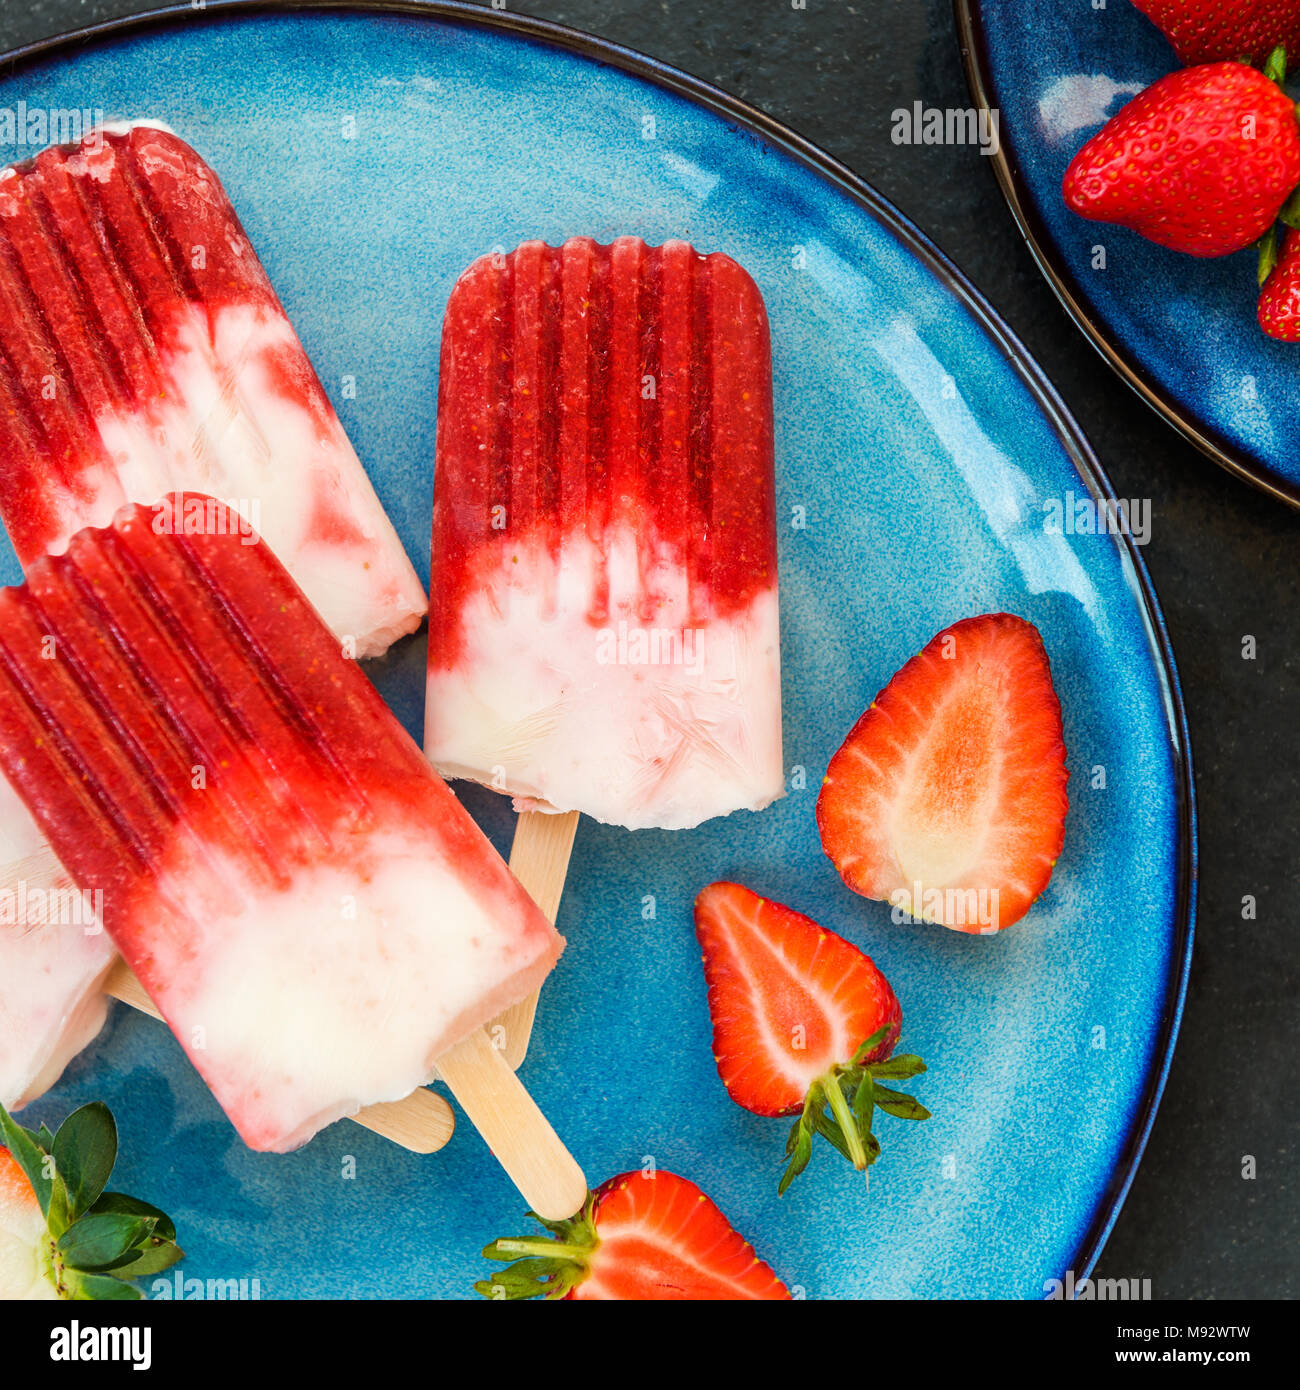 Homemade Vegan Strawberry Popsicle with Strawberry Juice and Coconut Milk on dark marble background. Summer food concept. Top view. - Stock Image